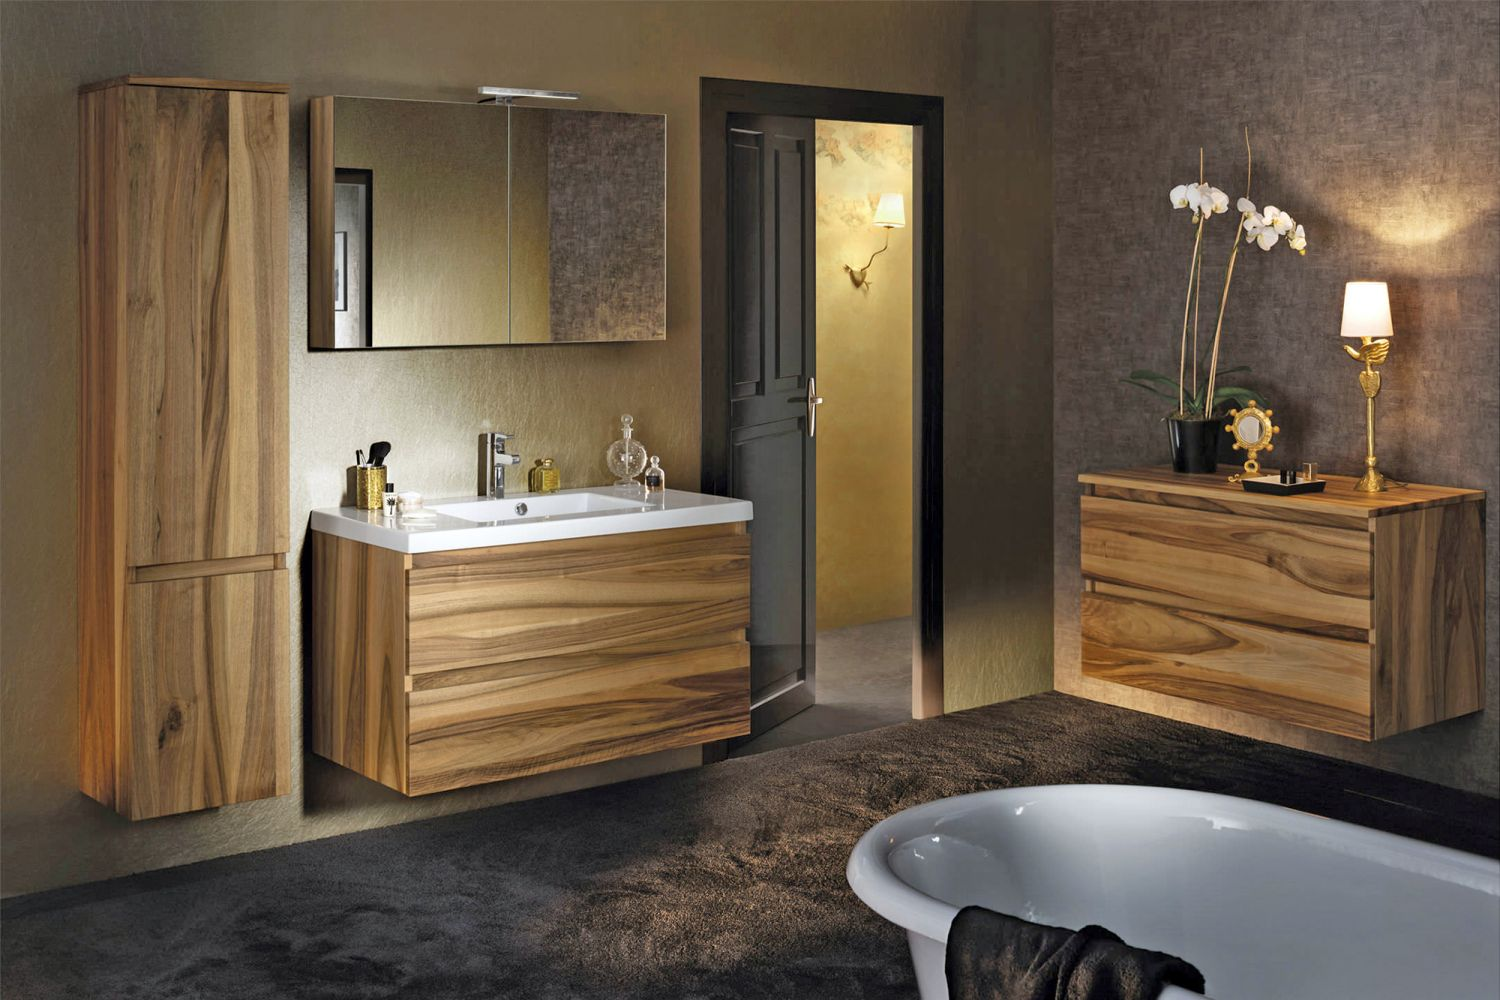 salle de bain moderne en bois tr s nature meuble et. Black Bedroom Furniture Sets. Home Design Ideas